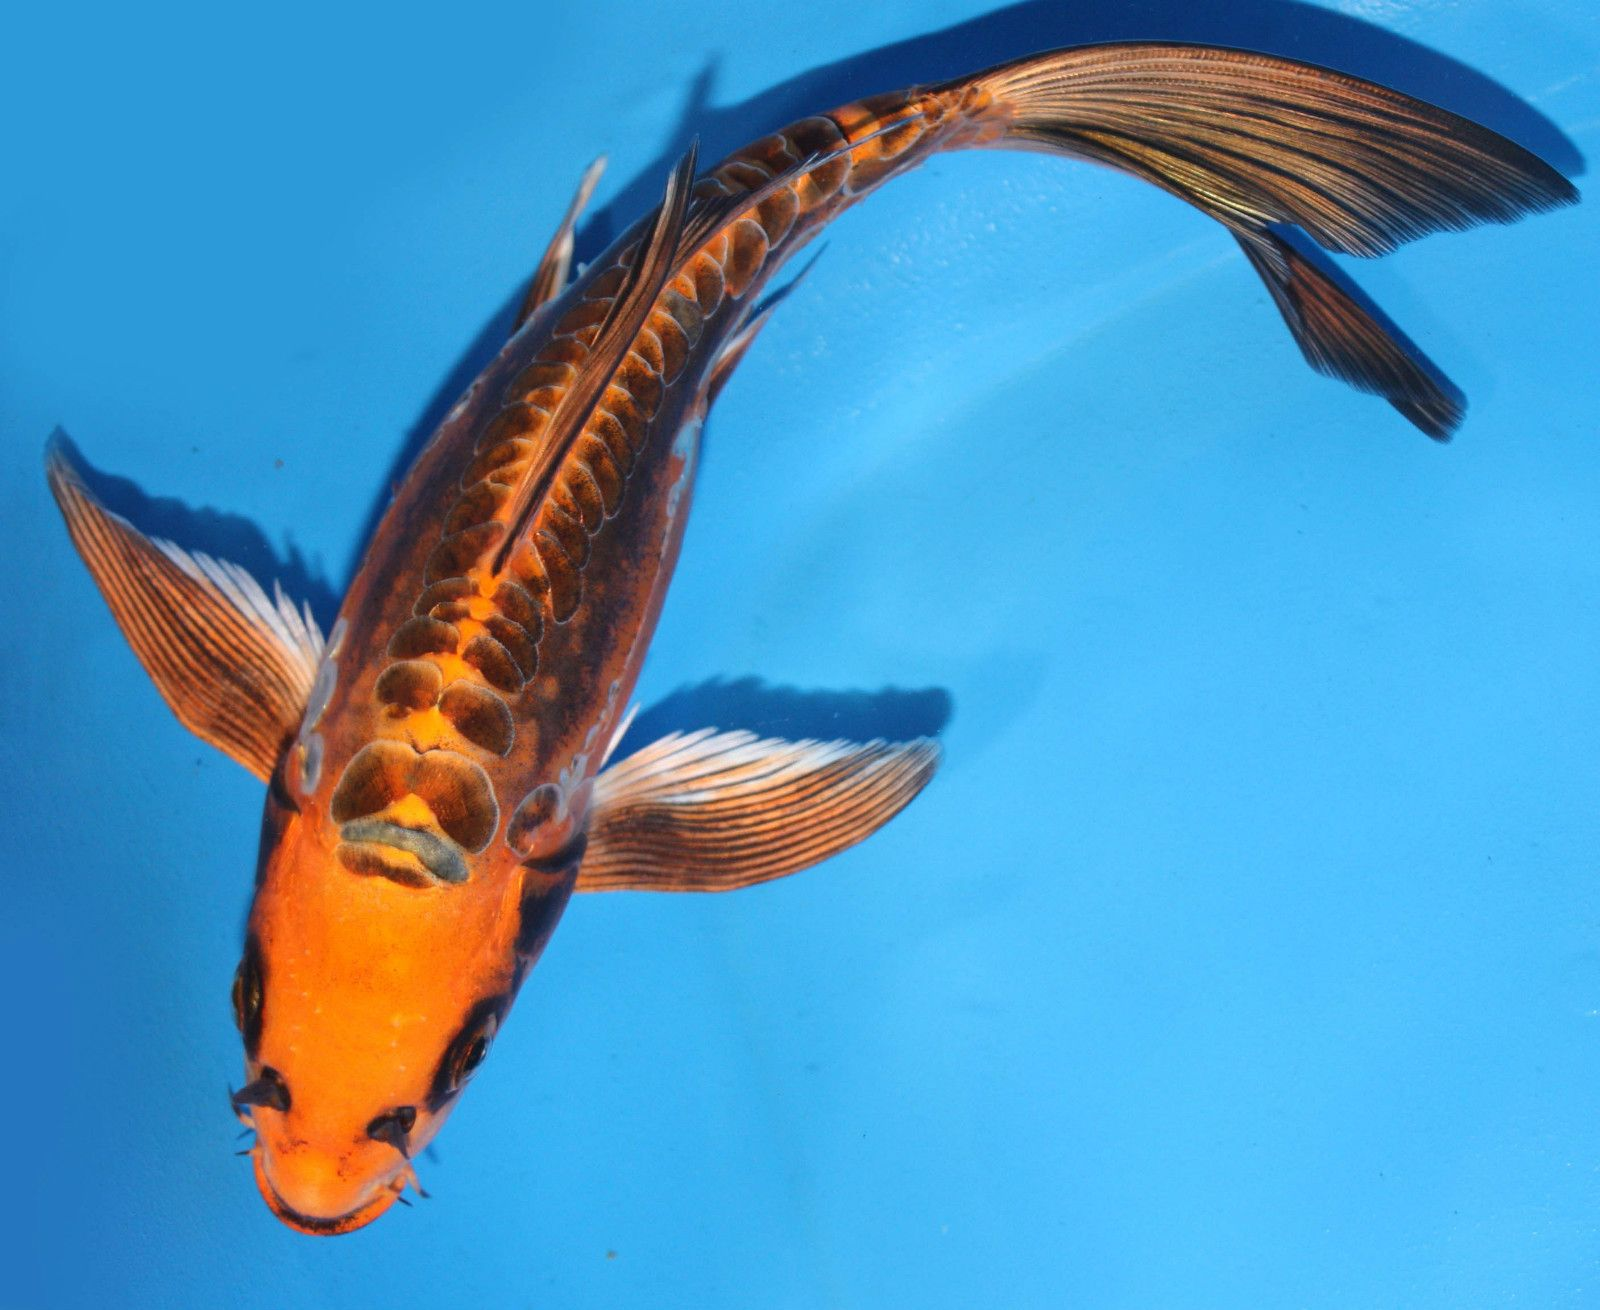 Doitsu kin matsuba ghost butterfly 9 10 live koi pond for Koi fish for sale